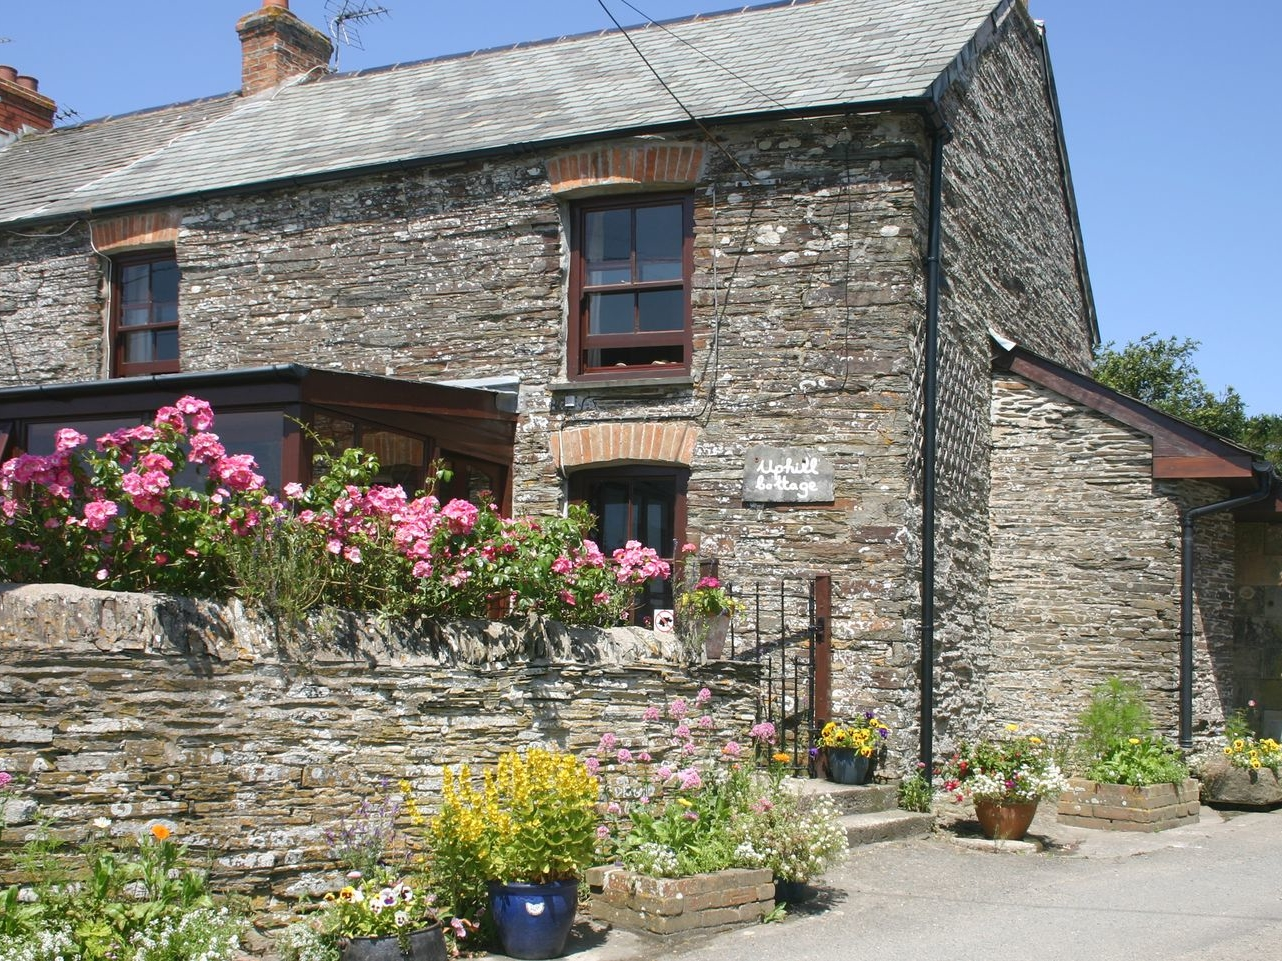 Uphill Cottage, St Merryn, Cornwall